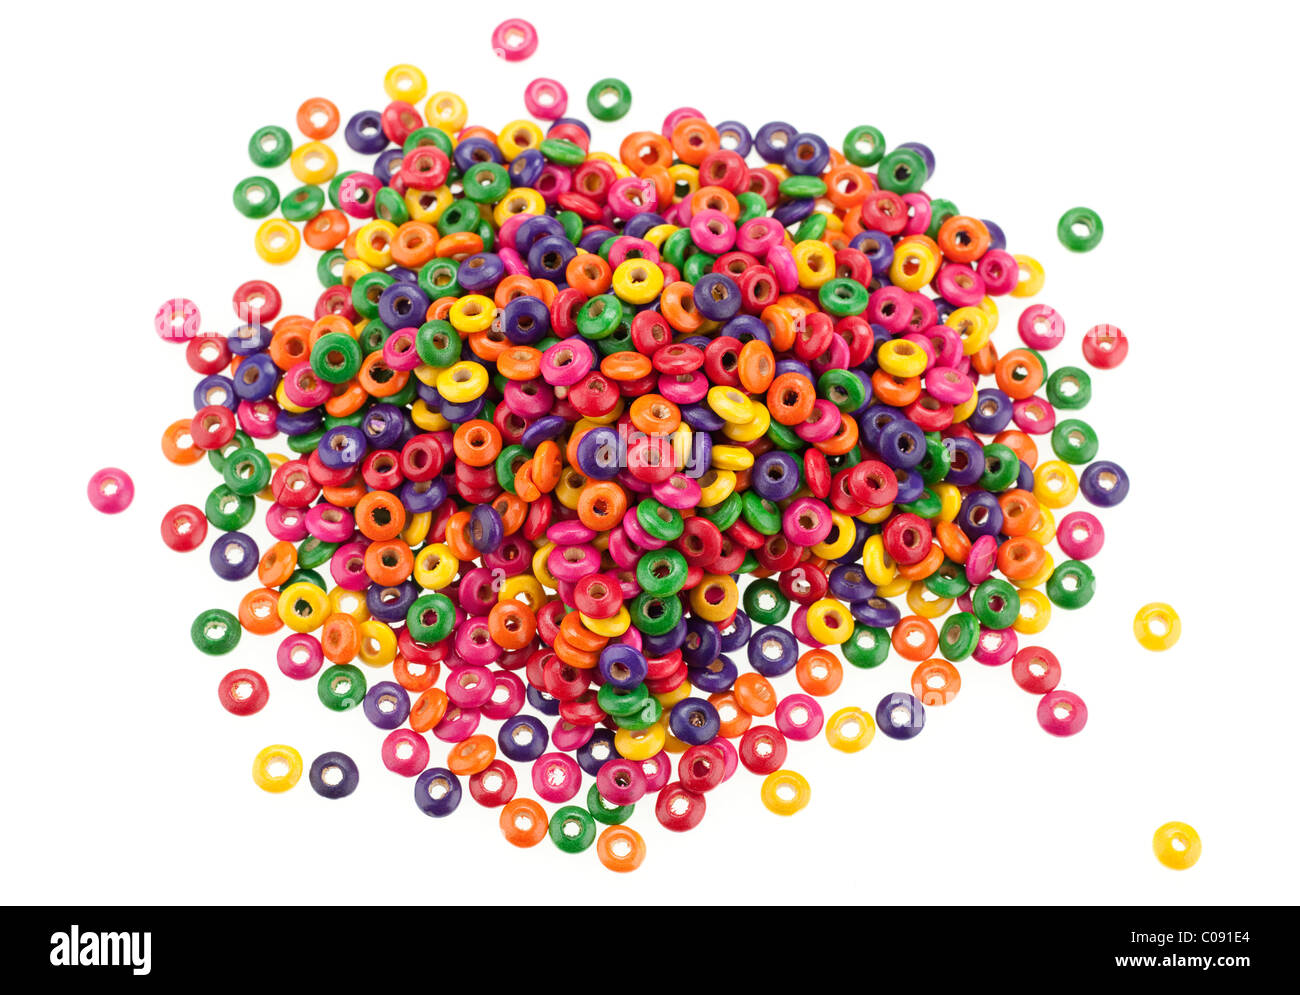 Pile of multicoloured wooden beads - Stock Image